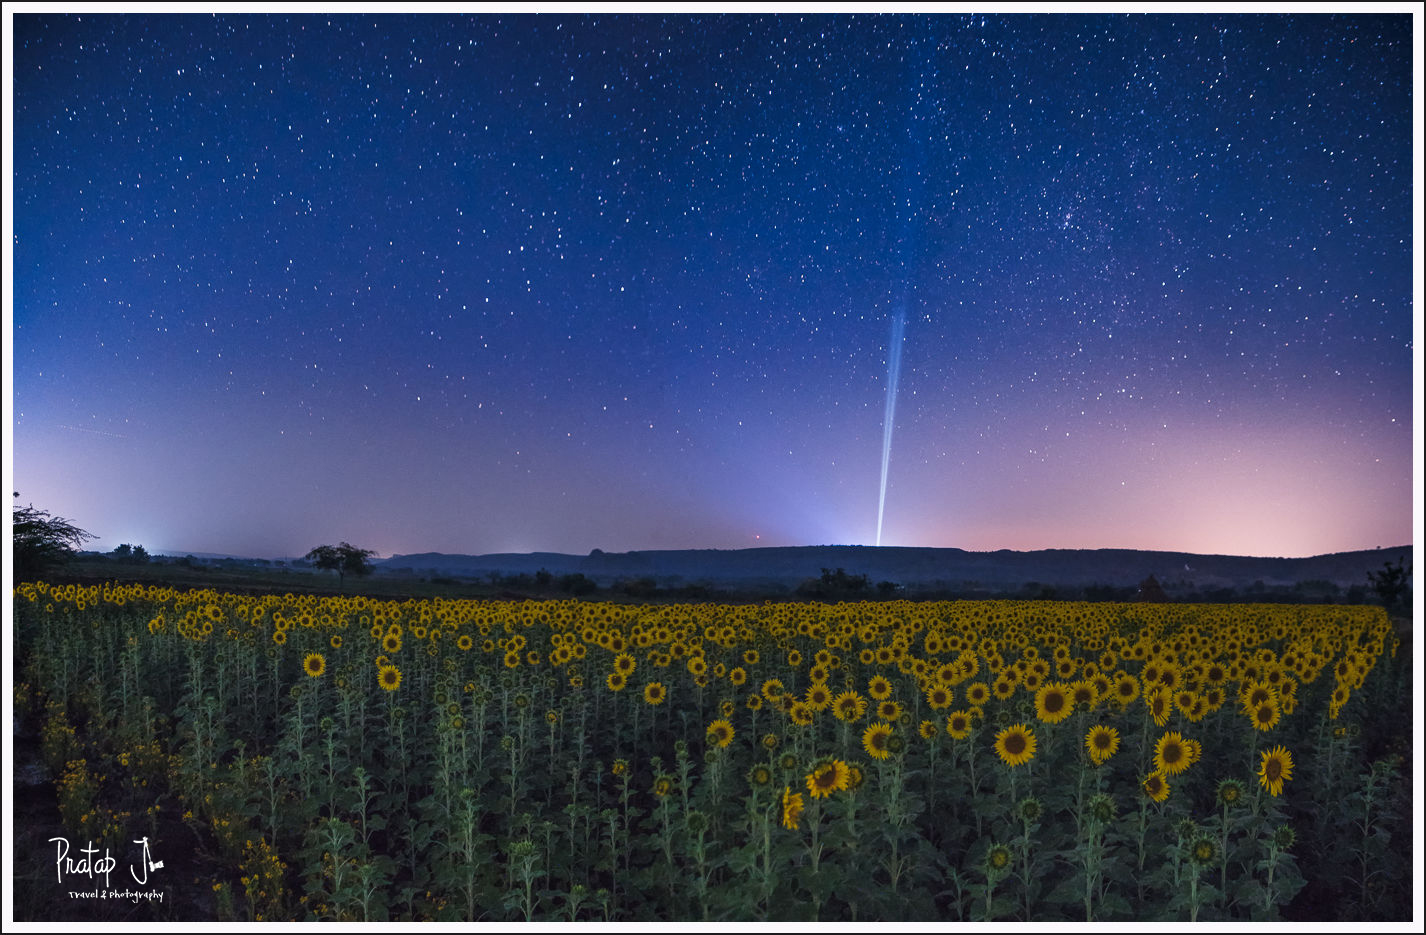 Night-Sky-Above-Sunflower-Fields_pj.jpg